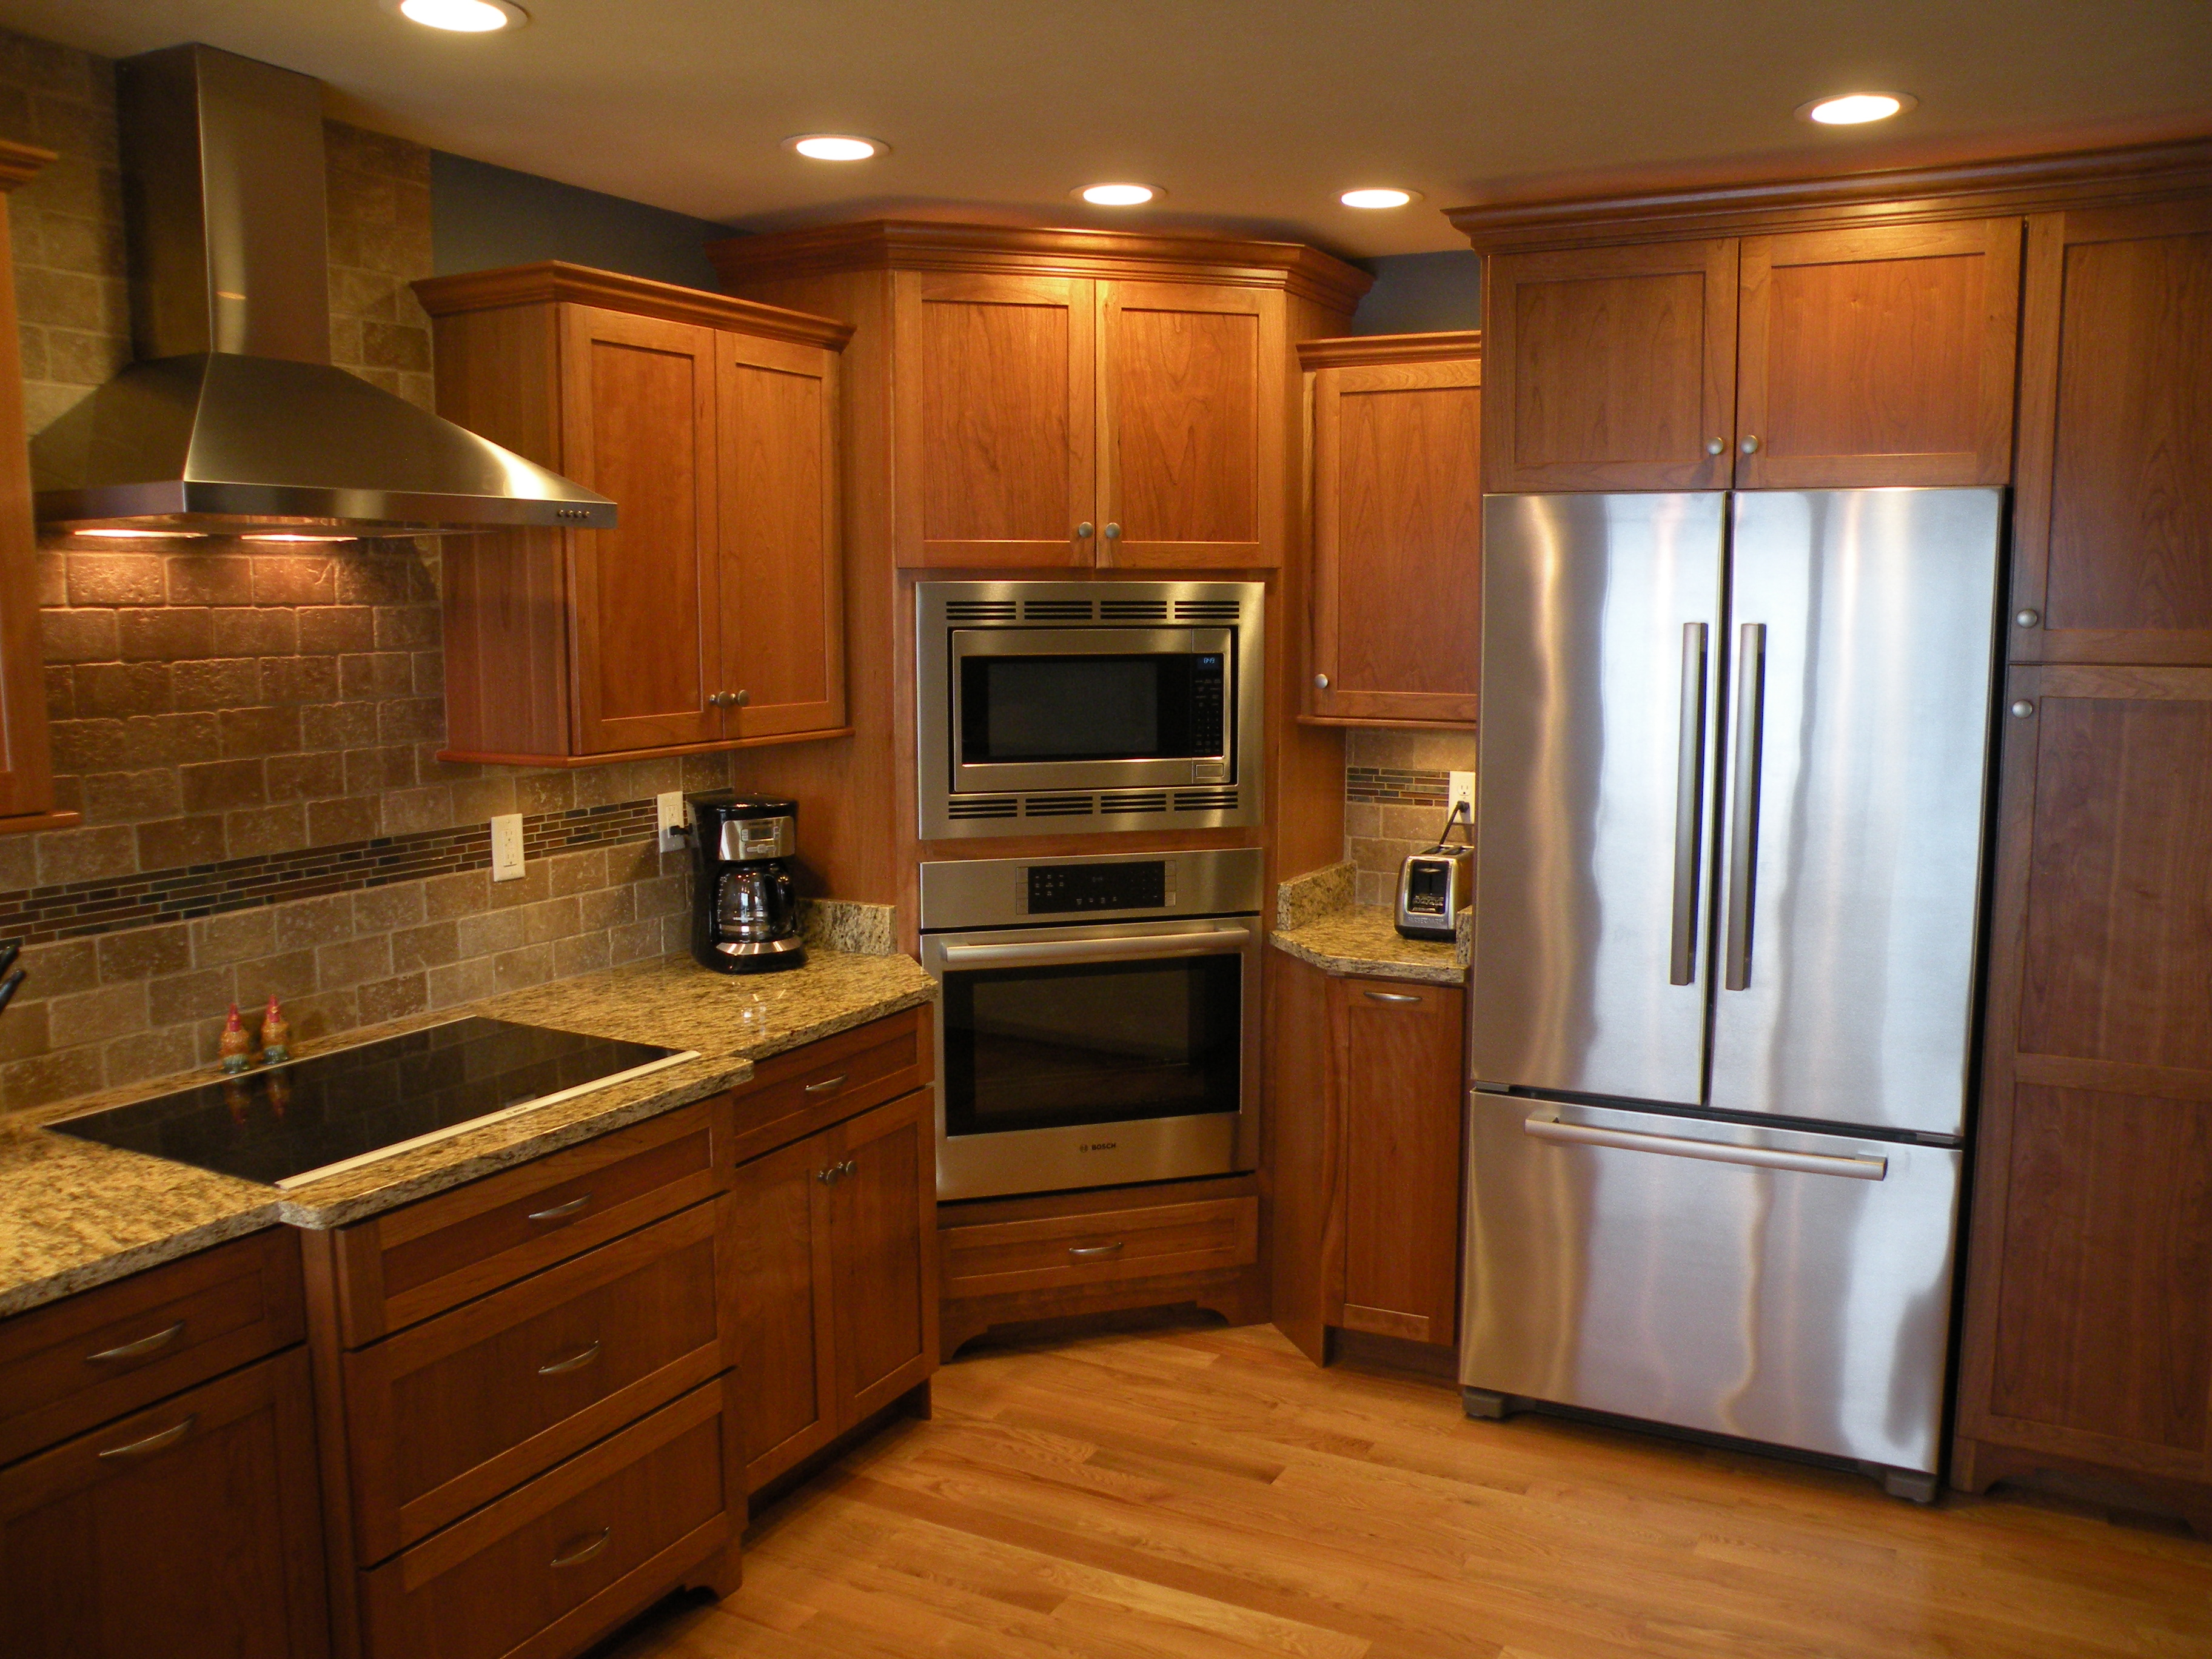 Kraftmaid Cherry Cabinetry With Honey Spice Stain